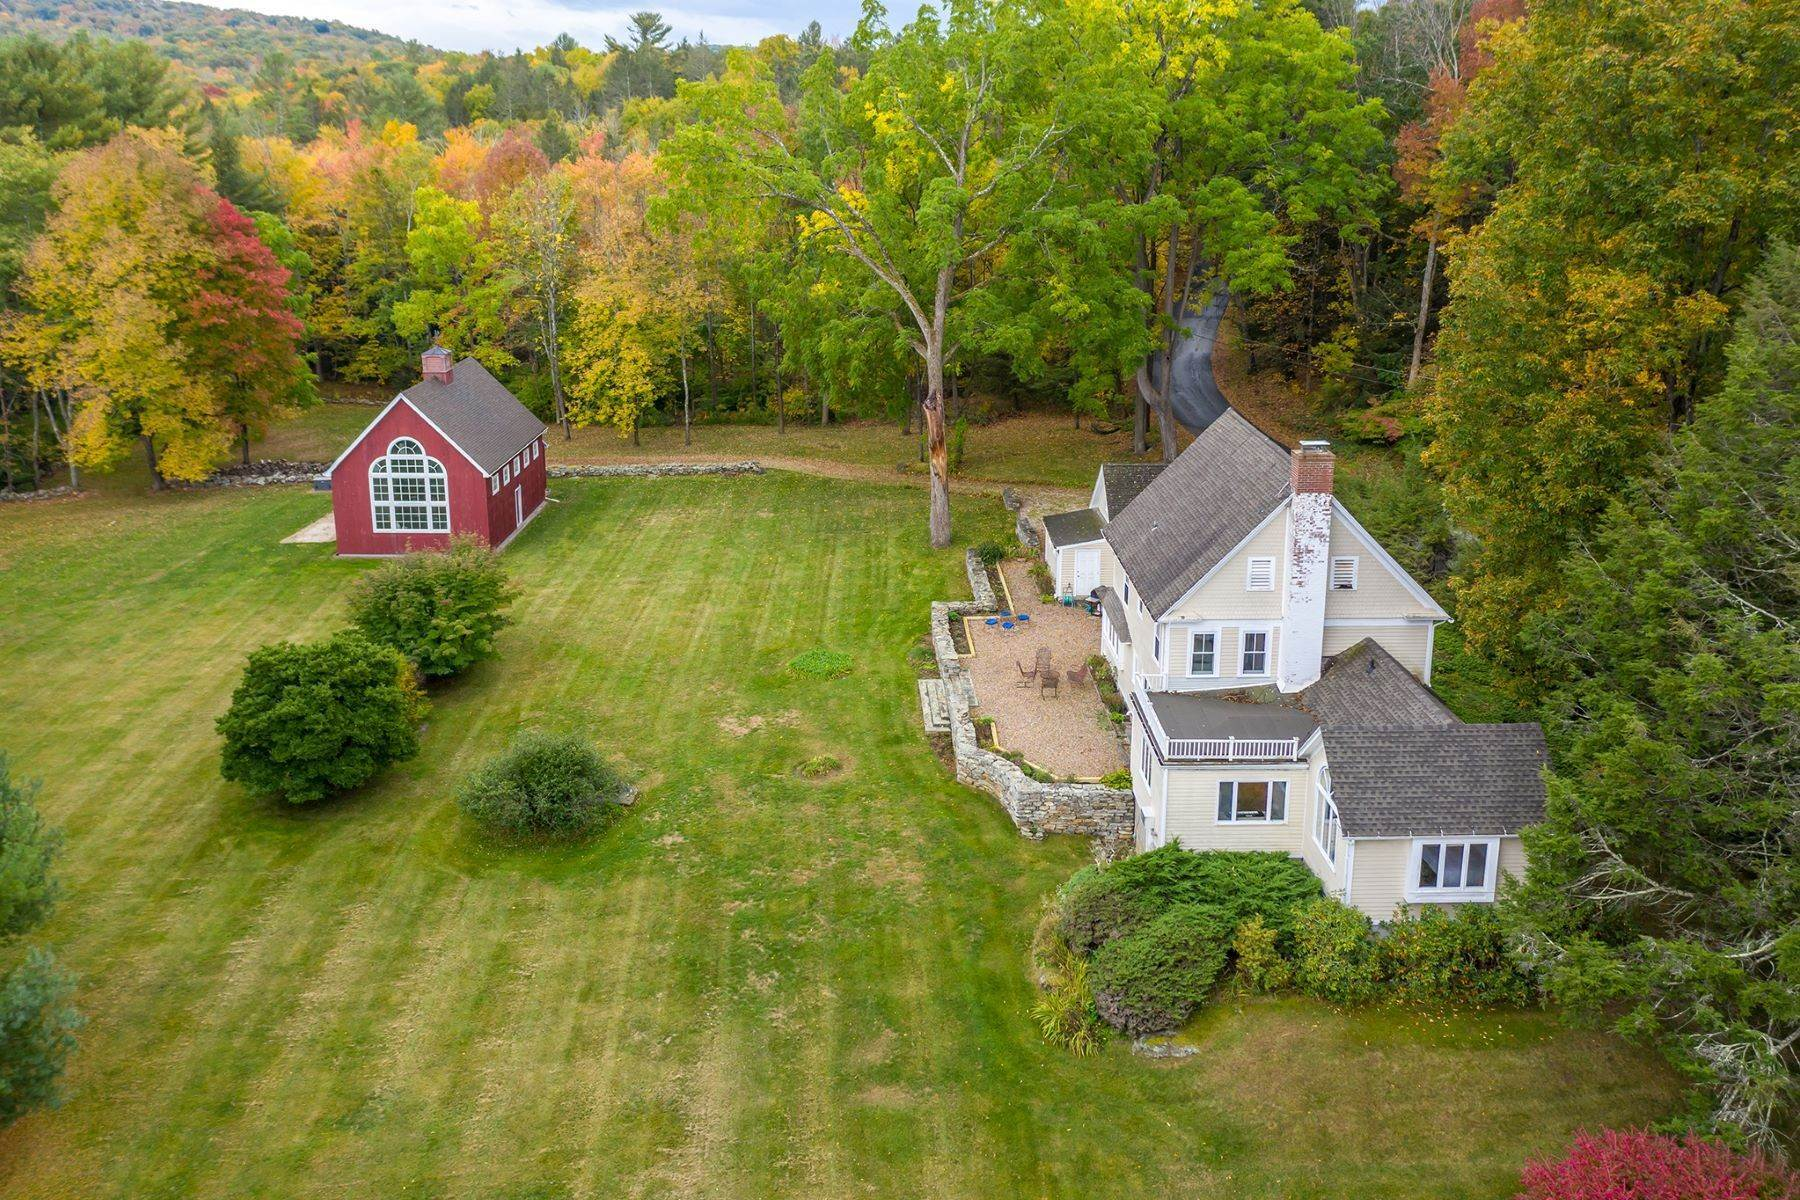 Single Family Homes for Sale at Scenic Cream Hill 432 Cream Hill Road Cornwall, Connecticut 06796 United States